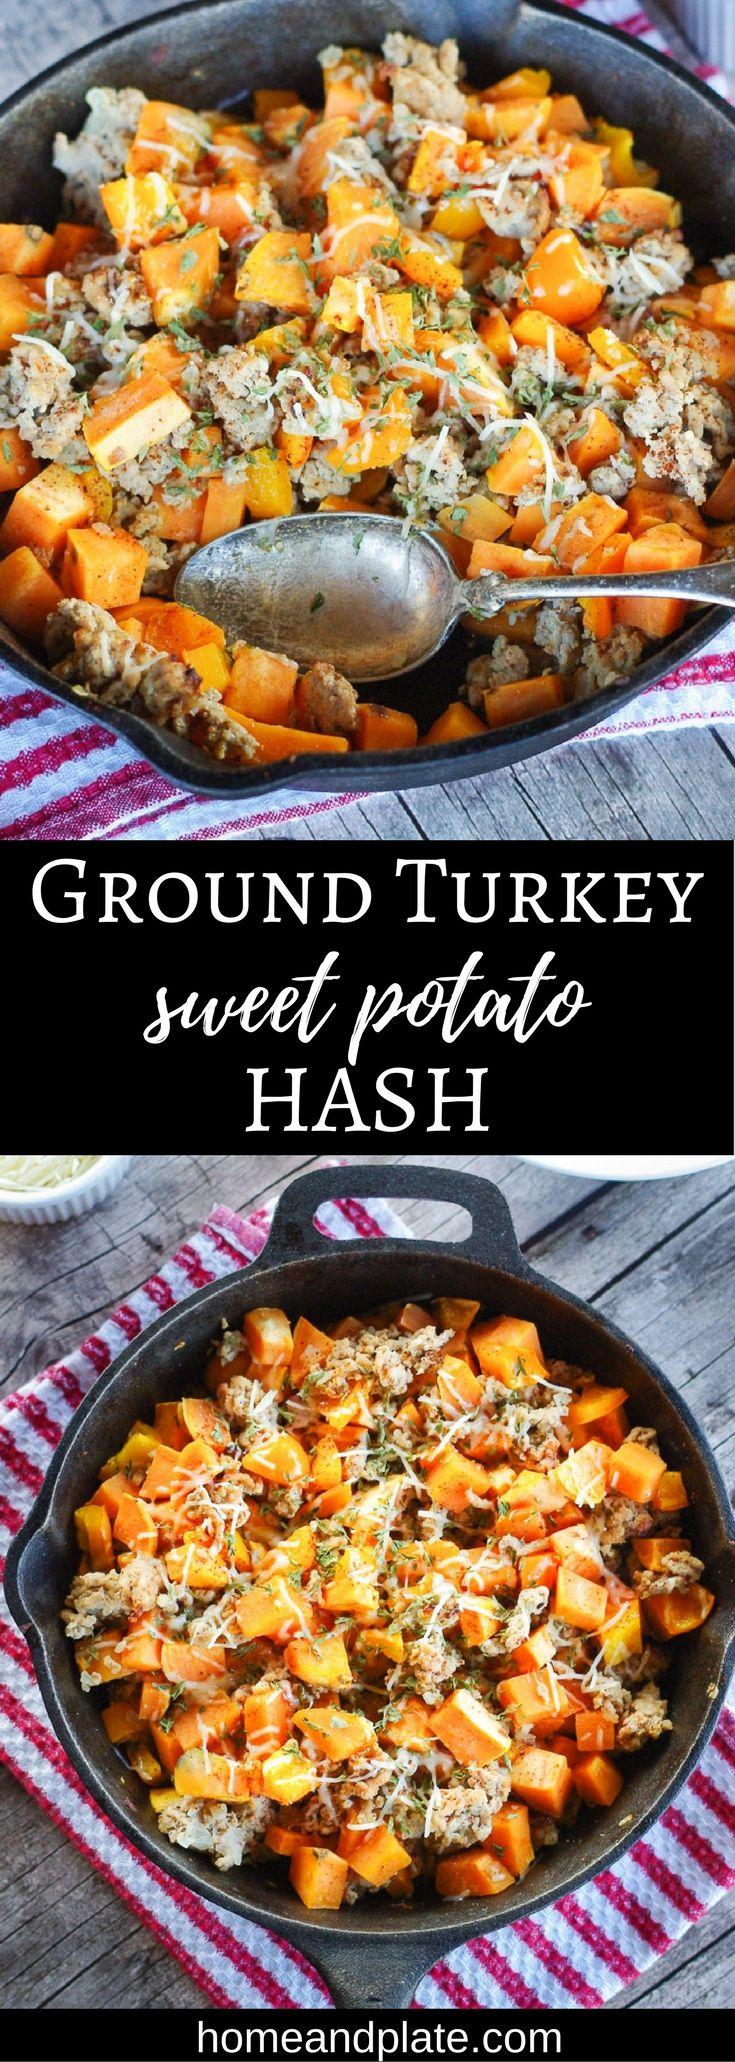 Ground Turkey Sweet Potato Hash   From skillet to plate in 30 minutes, this easy ground turkey and sweet potato hash is the ideal dish for a weeknight dinner or a weekend breakfast.   www.homeandplate.com   #holiday #leftovers #skilletmeal